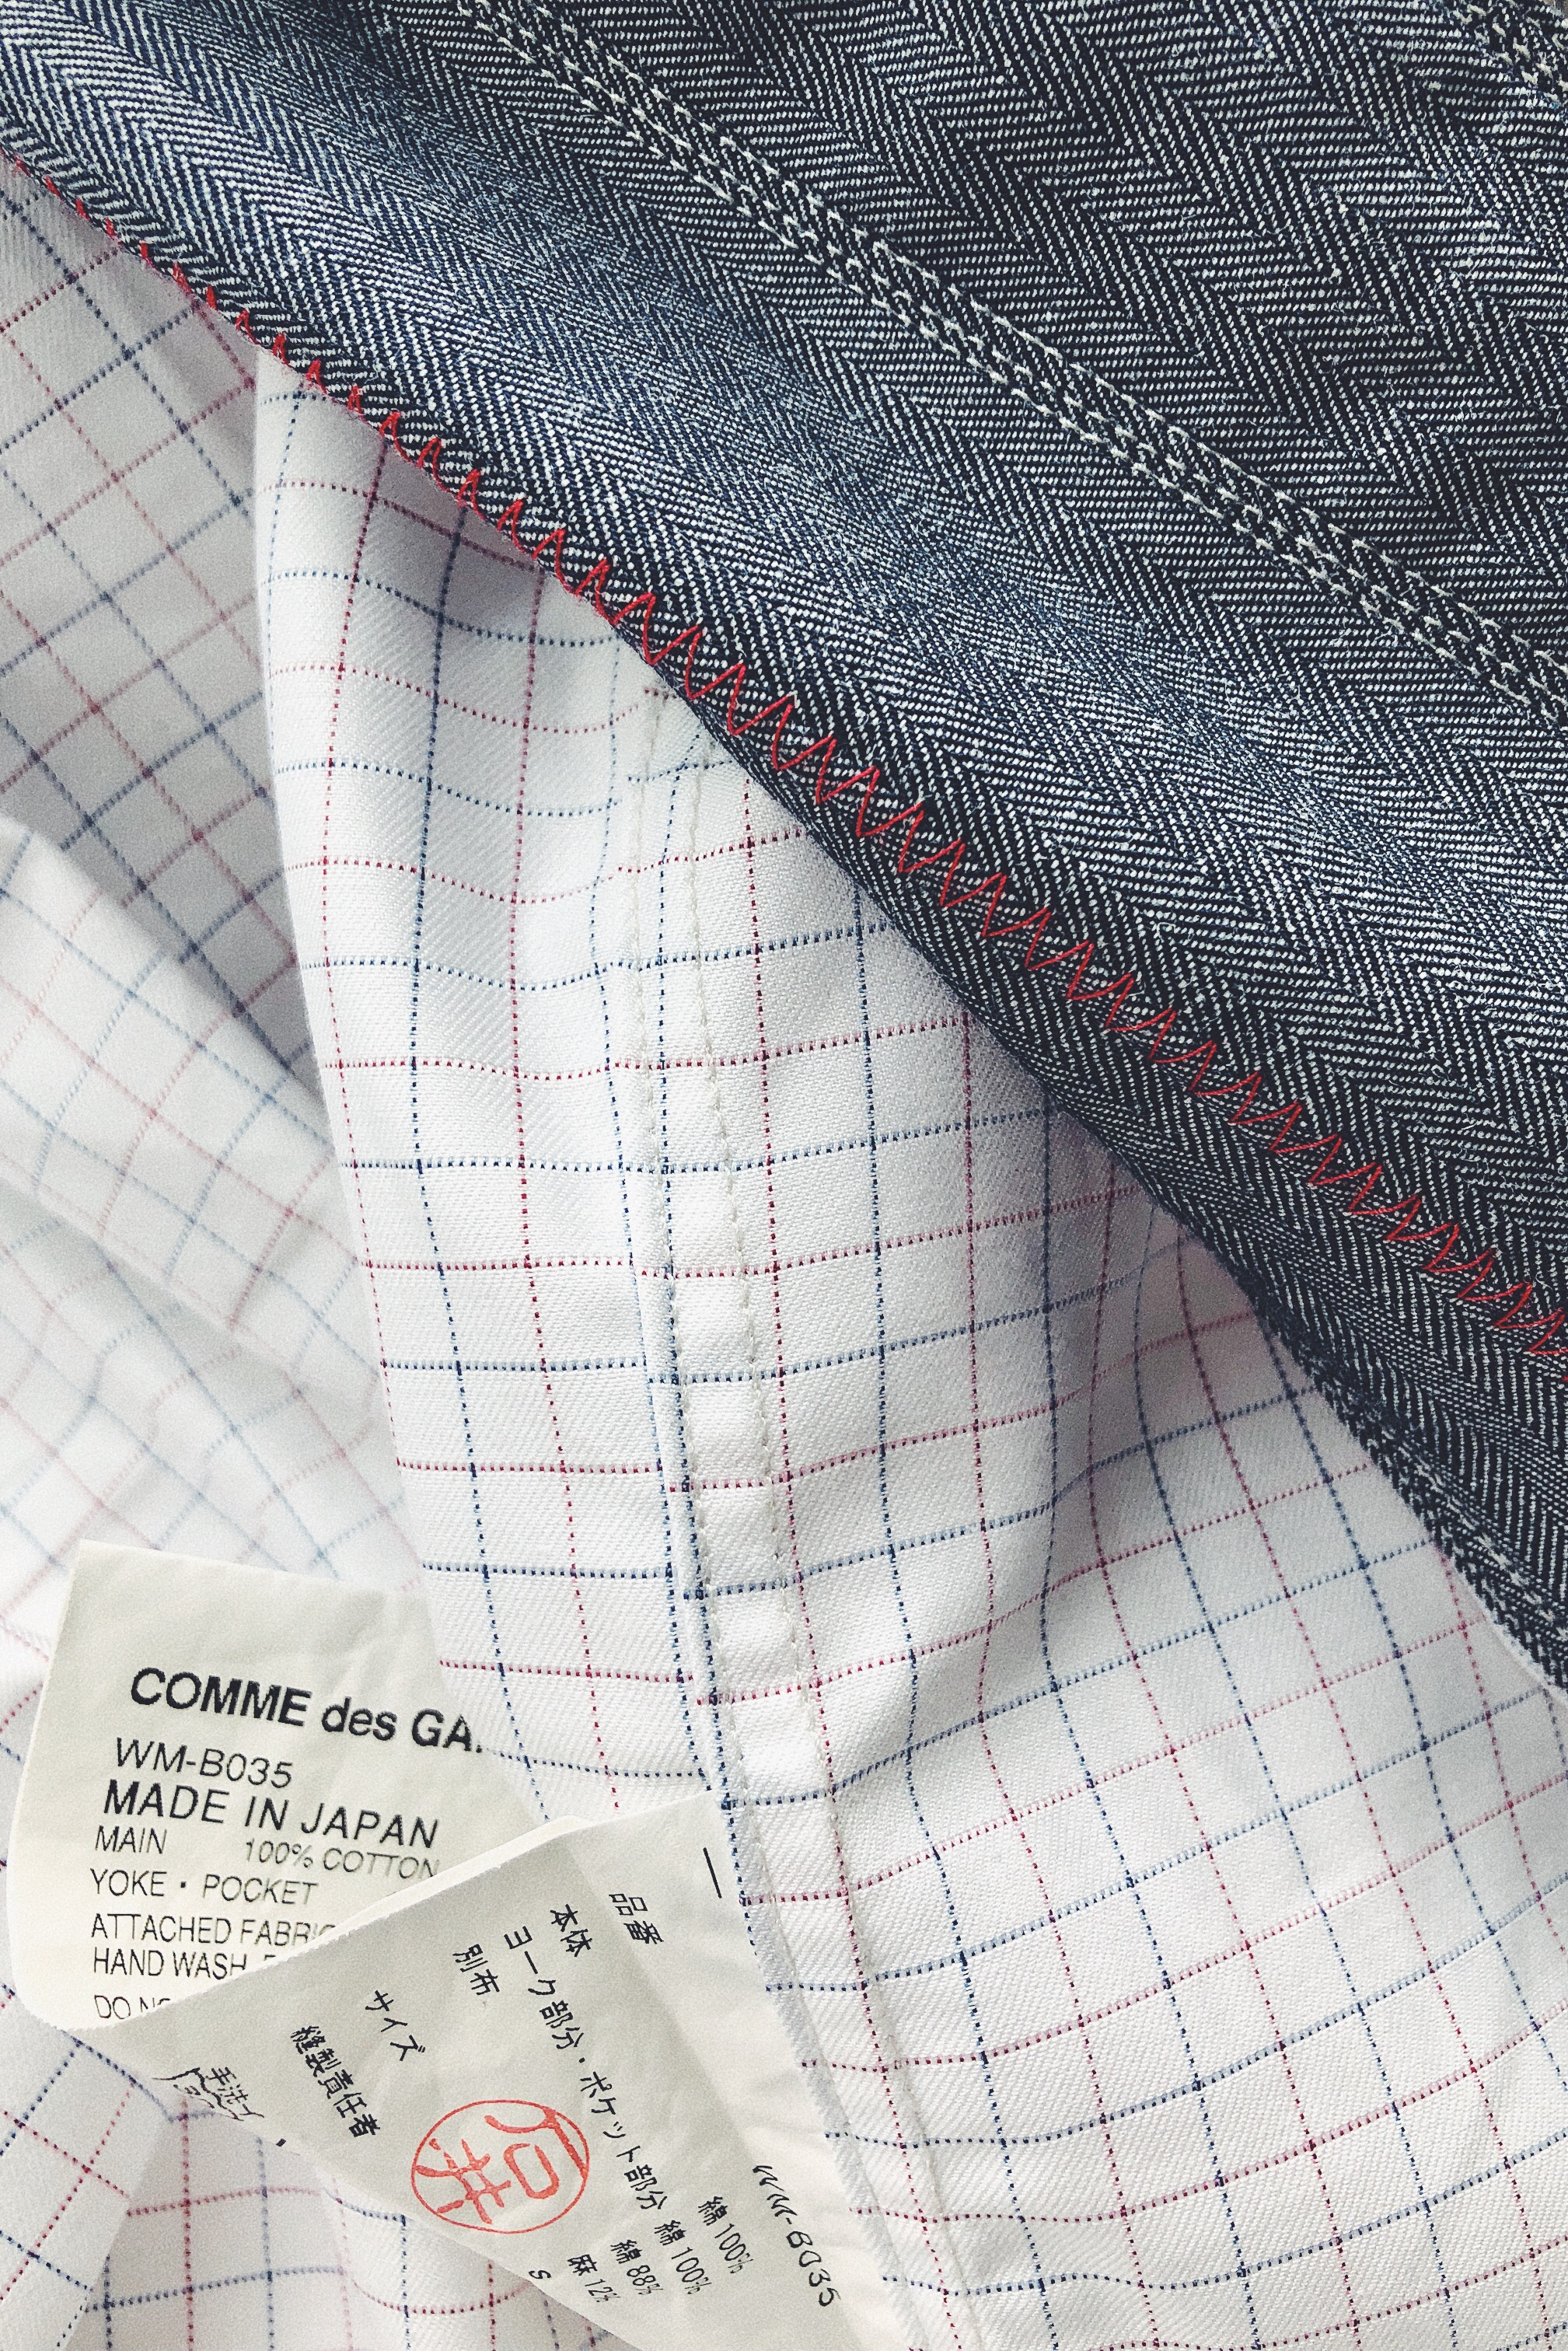 Details of seams from a shirt.